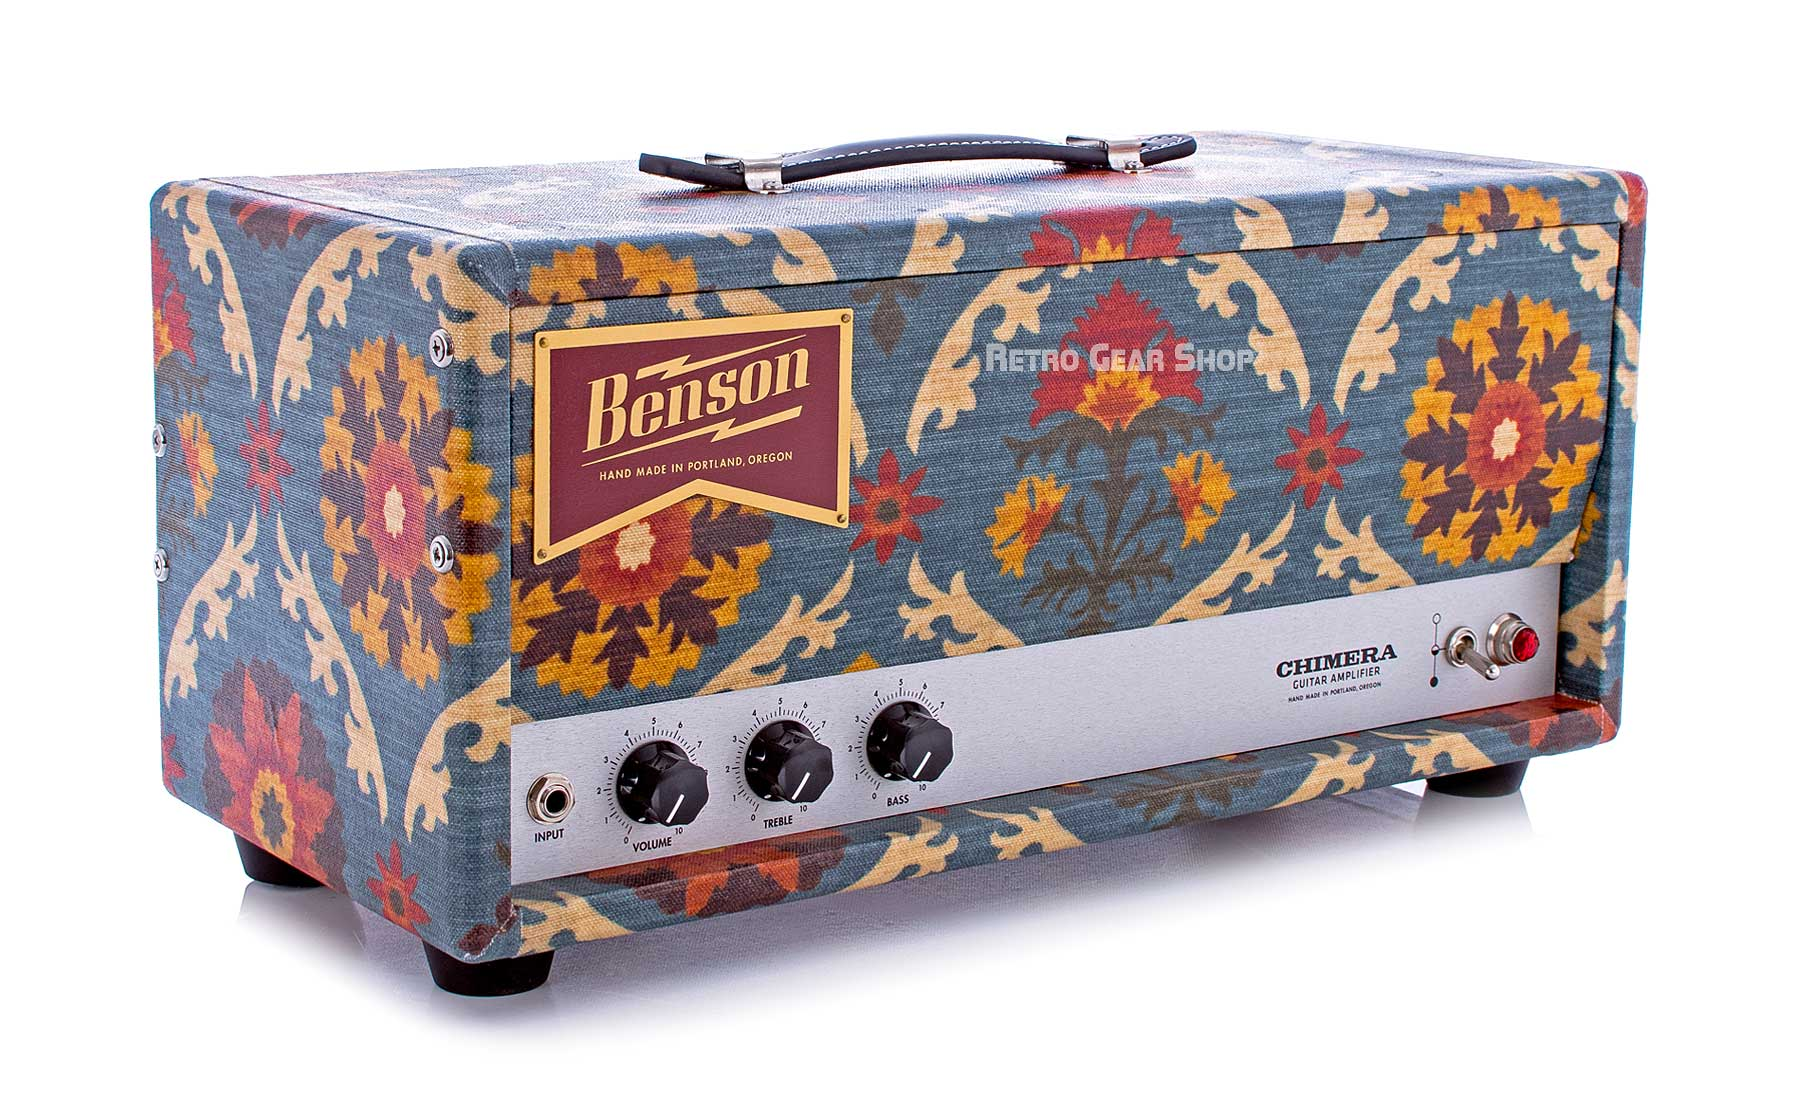 Benson-Amps-Chimera-30-Watt-Head-Aunt-Gertie-Top-Left